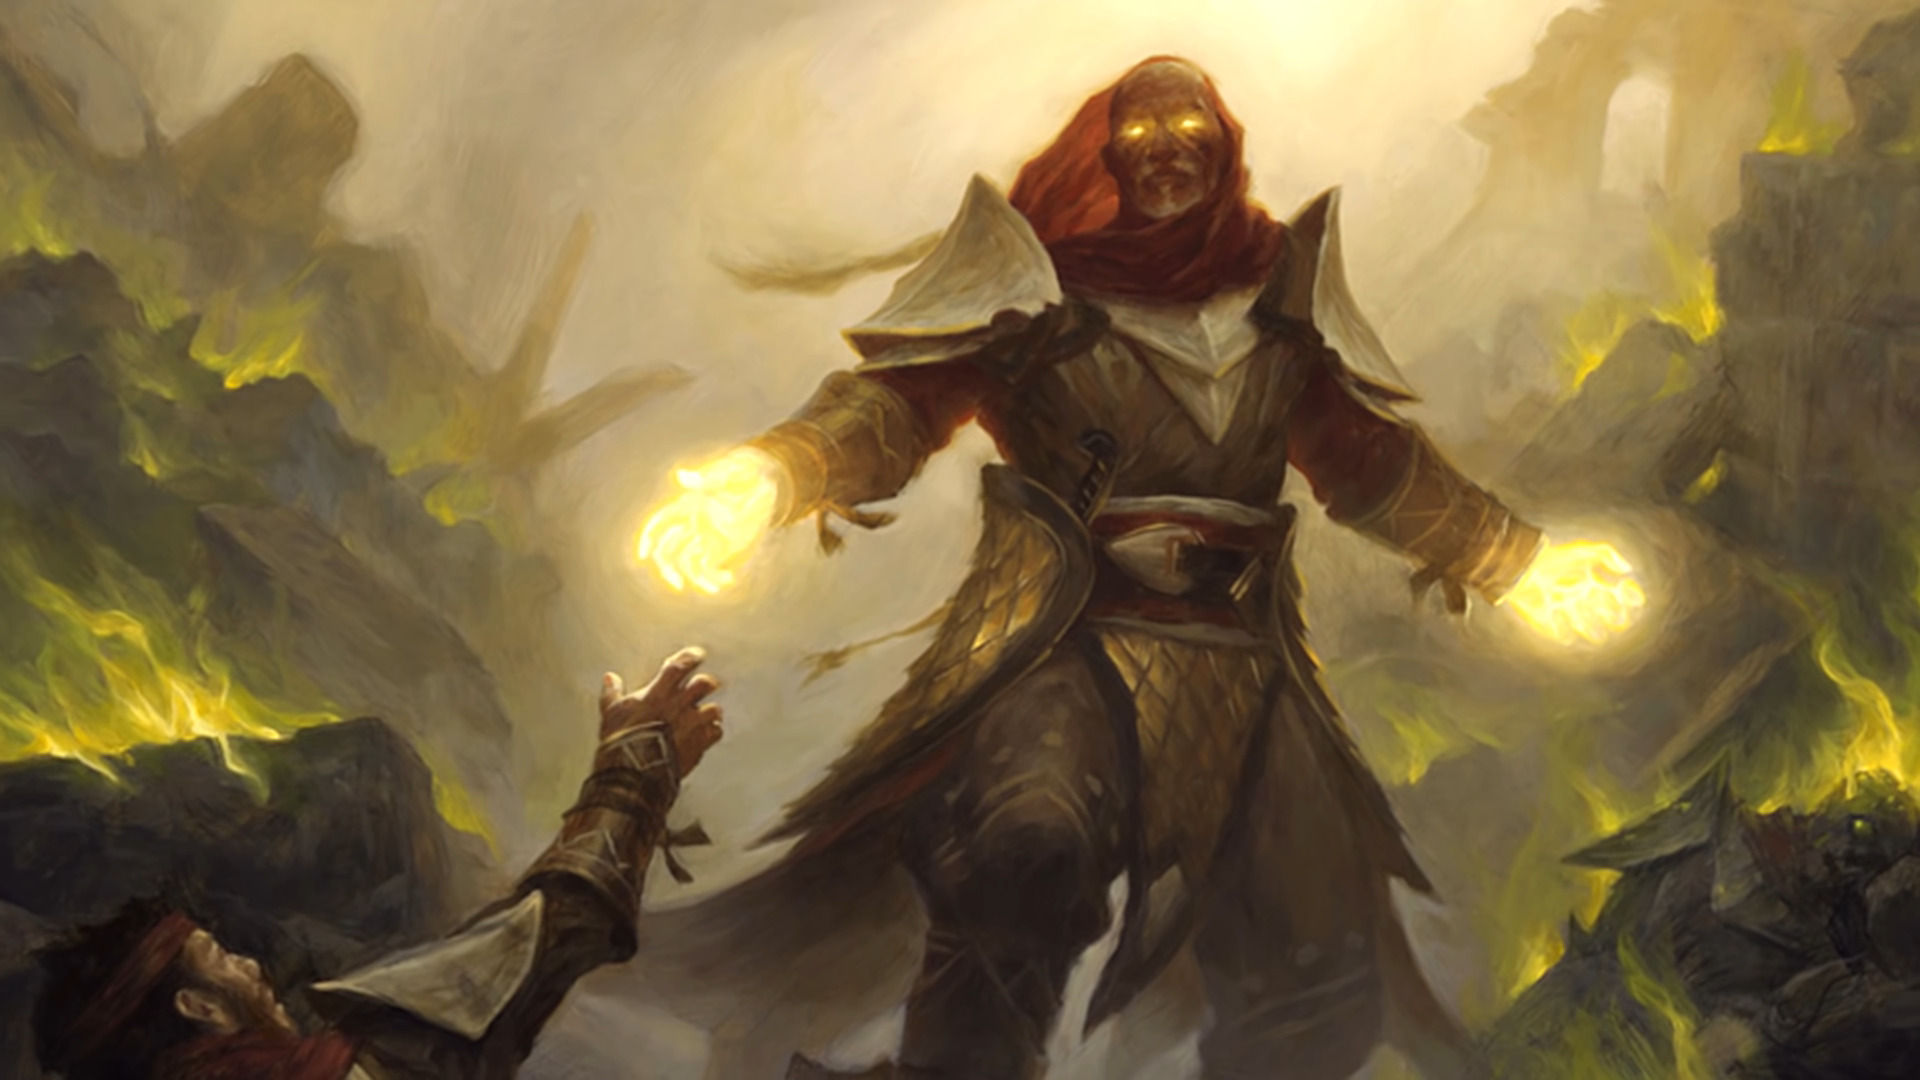 A Cleric's Guide To D&D: Simple Things Every Gods-Fearing Cleric Should Know In Dungeons And Dragons